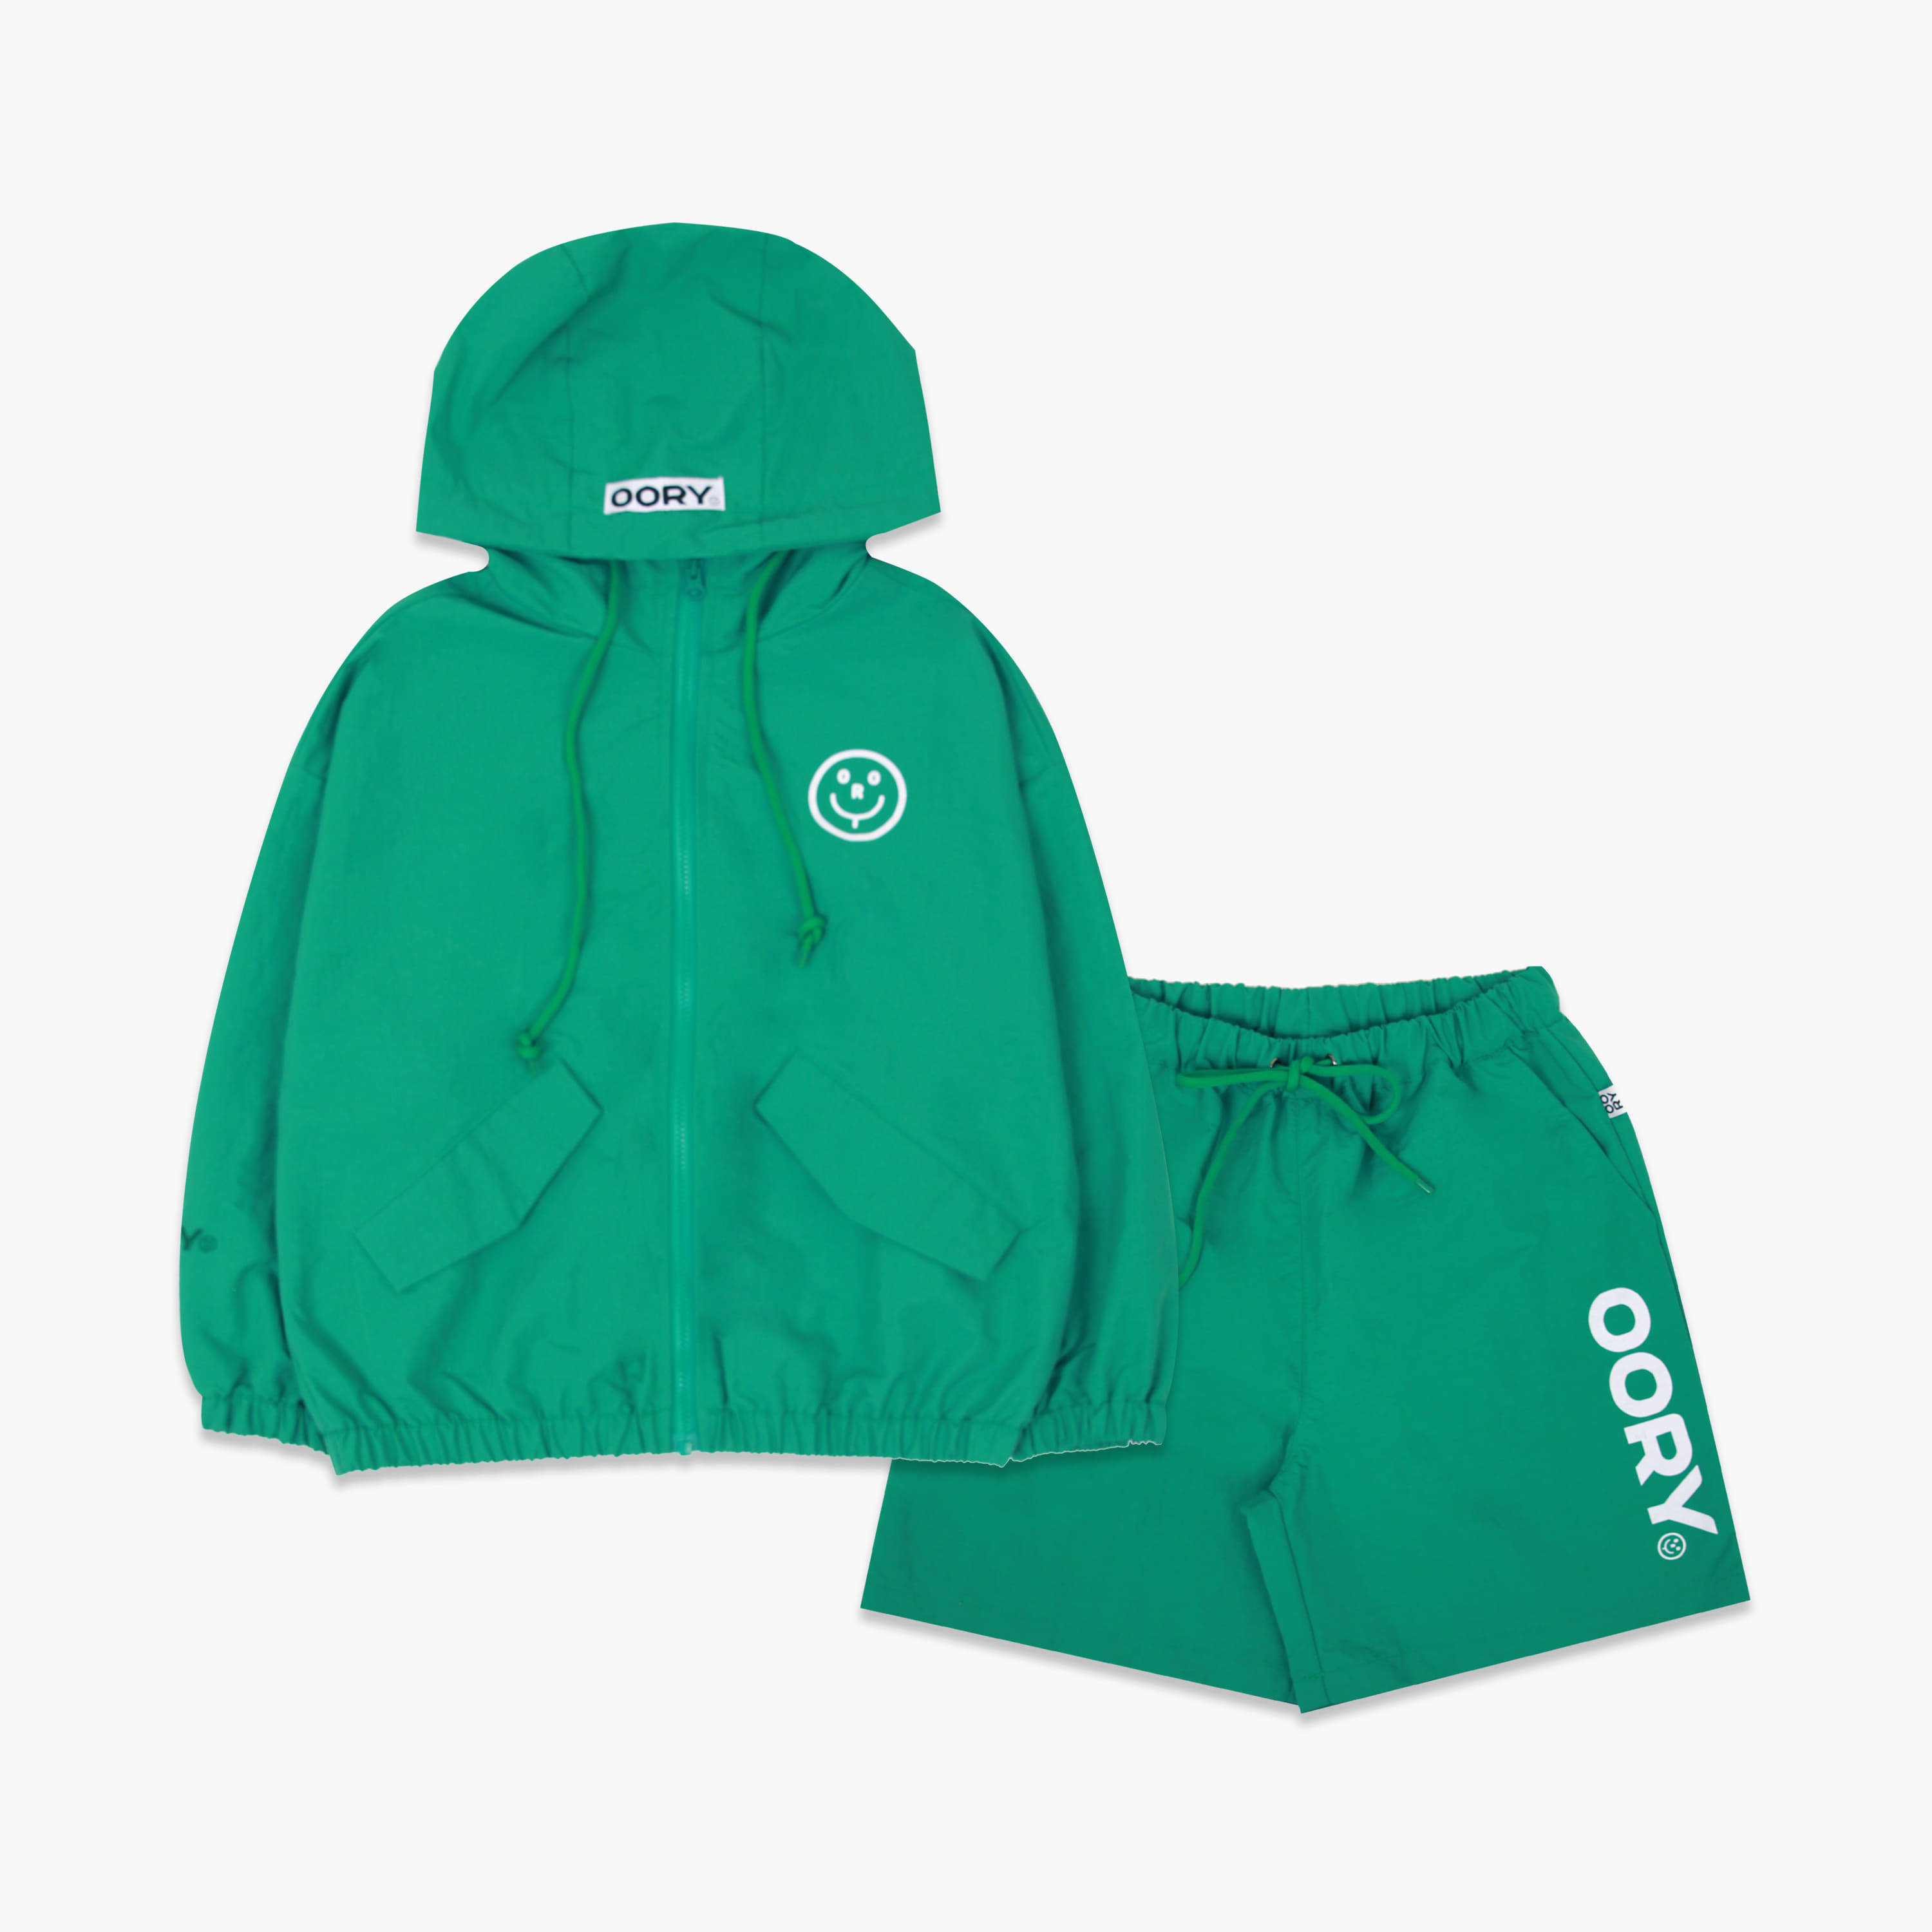 OORY 21 S/S Windbreak set - green( 2차 입고 )